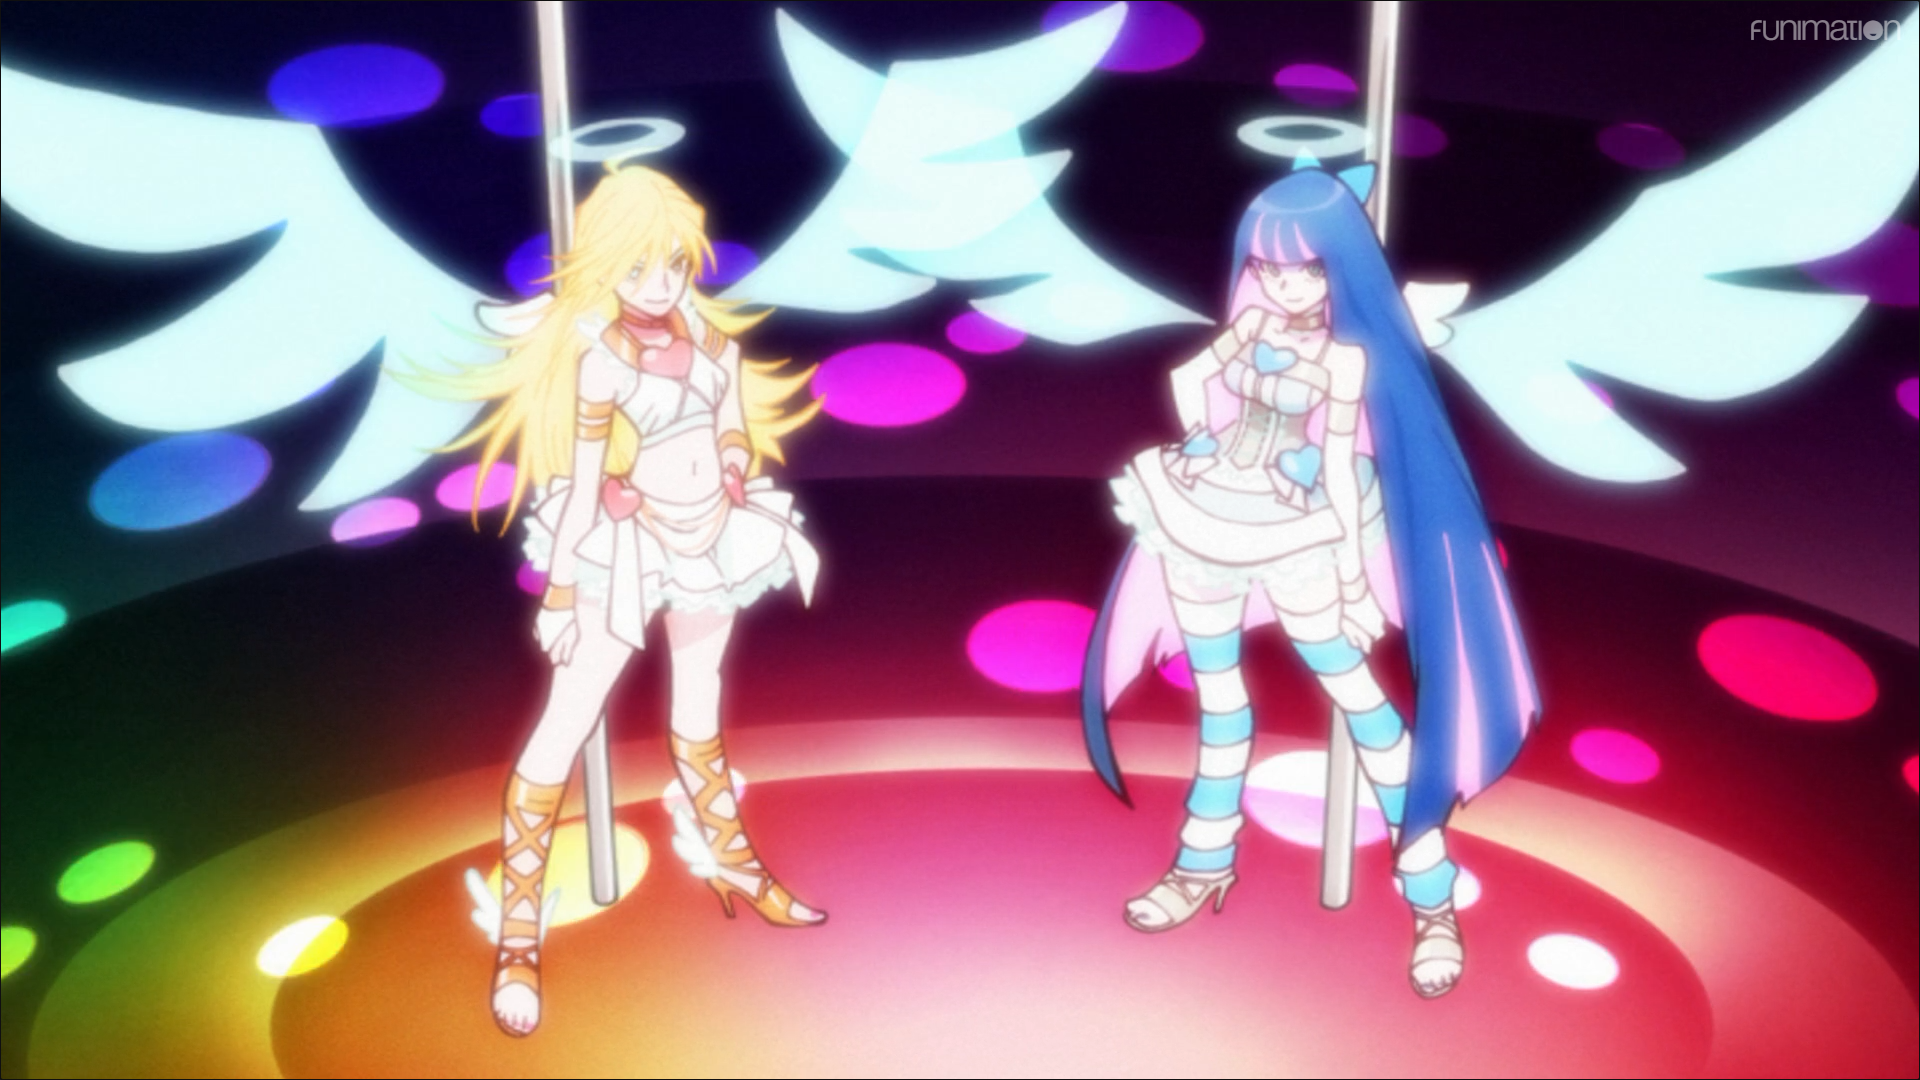 Panty and Stocking prepare to perform their pole-dance transformation sequence in a scene from the Panty & Stocking with Garterbelt TV anime.